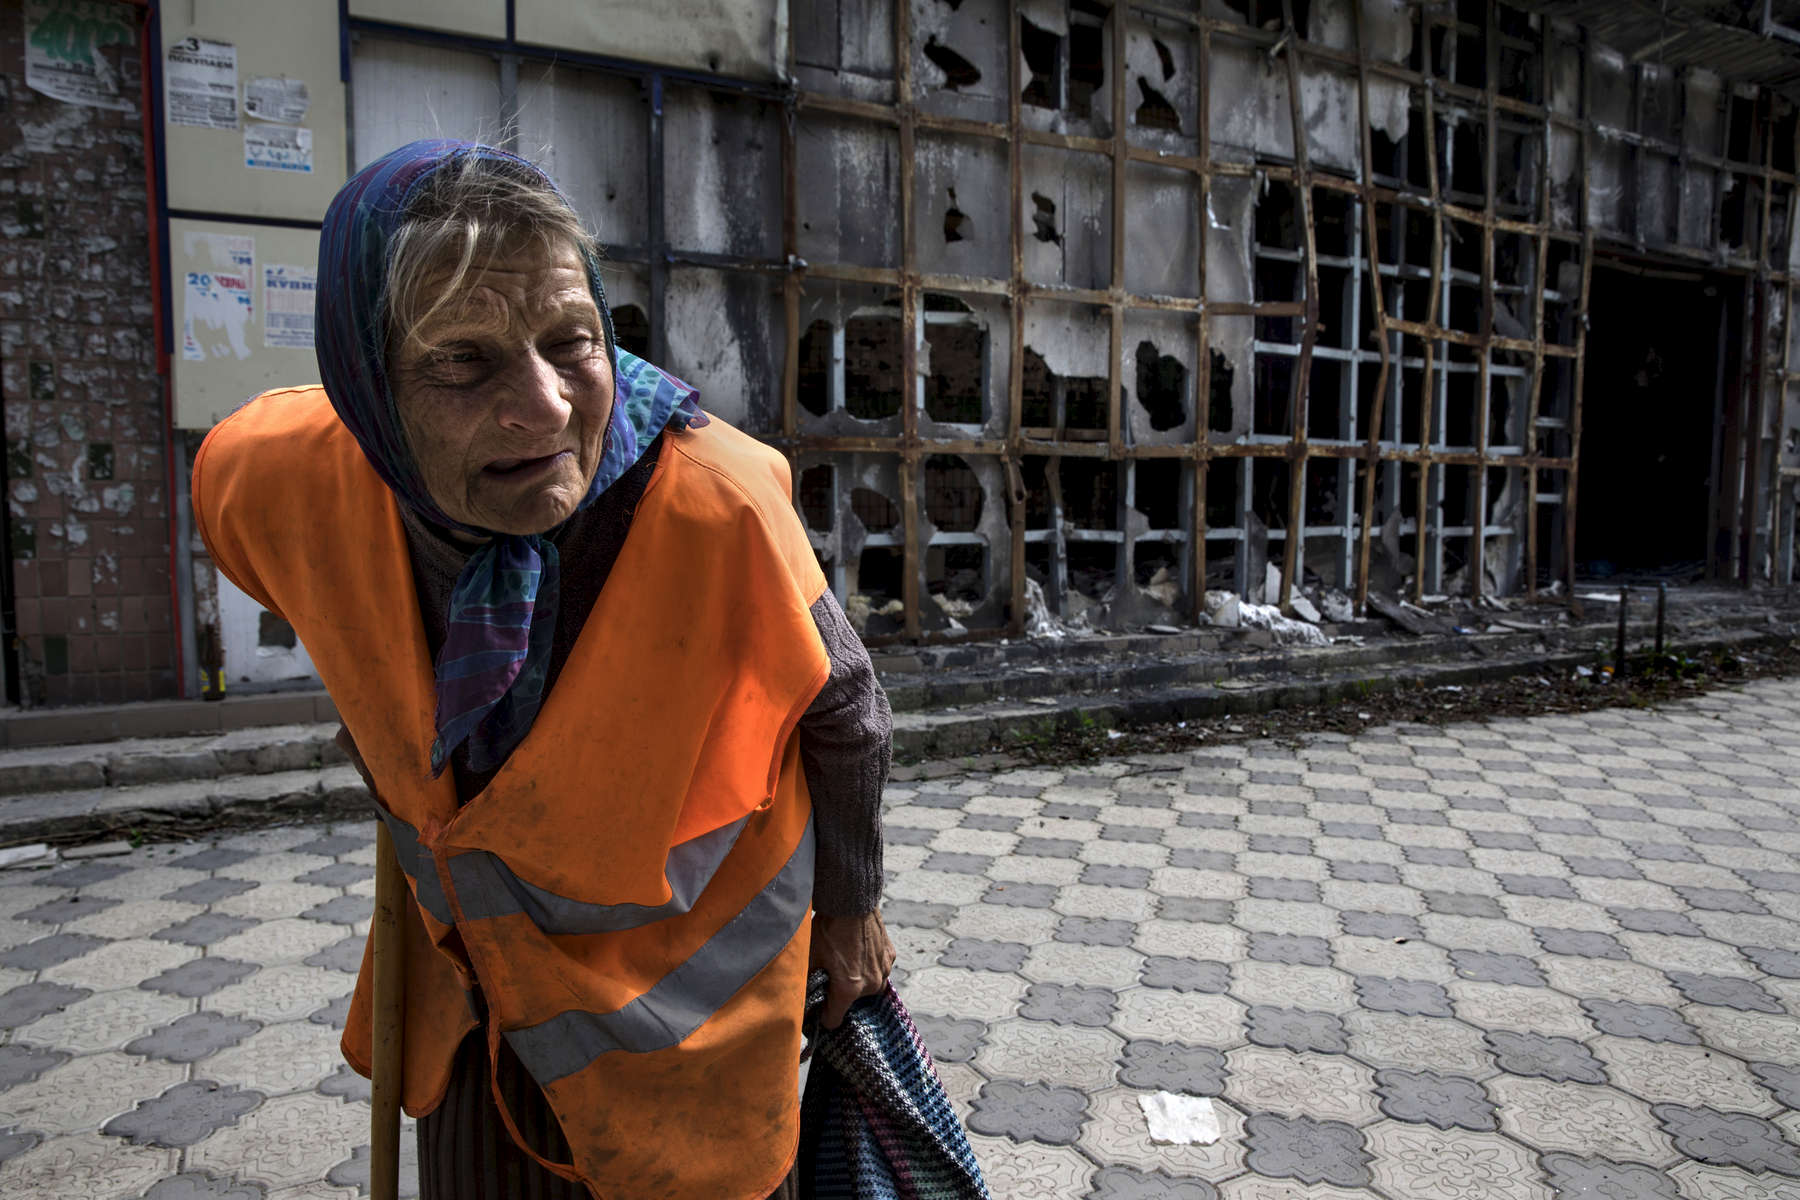 "Raisa Andreyevna,72, walks home from a local market area which was destroyed back in 2015. She works as a janitor which pays her enough to survive. Originally from Russia, she now lives alone. Her children and grandchildren have all moved away to safer areas as part of Donetsk remain dangerous and occasionally gets shelled. ""I have told them to move out, I am not afraid to get killed because I have already lived my life but they have children they have to take care of."" Since the beginning of the war she can no longer receive her Ukrainian pension of $50 a month. After more than four years of war the armed conflict in eastern Ukraine has a human toll that is staggering. The war has displaced more than 1.6 million with over 2,500 civilians killed and 9,000 injured. Some 200,000 people live under constant fear of shelling every day, with nearly a third of the 3.4 million people in need of humanitarian assistance over 60 years of age. Ukraine has the highest proportion of elderly affected by war in the world."